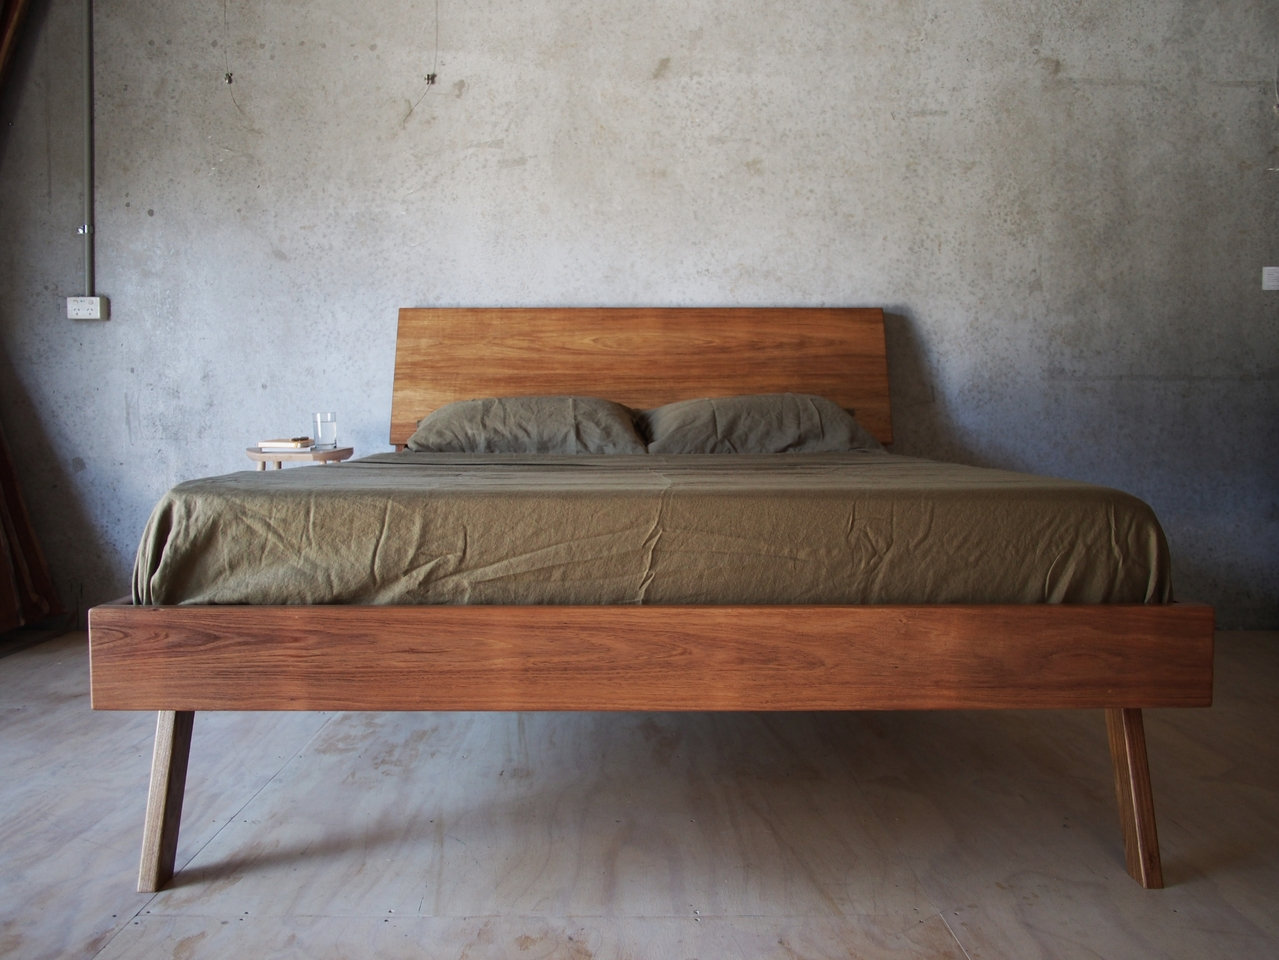 Tall Bed By Reuben Daniel Handkrafted